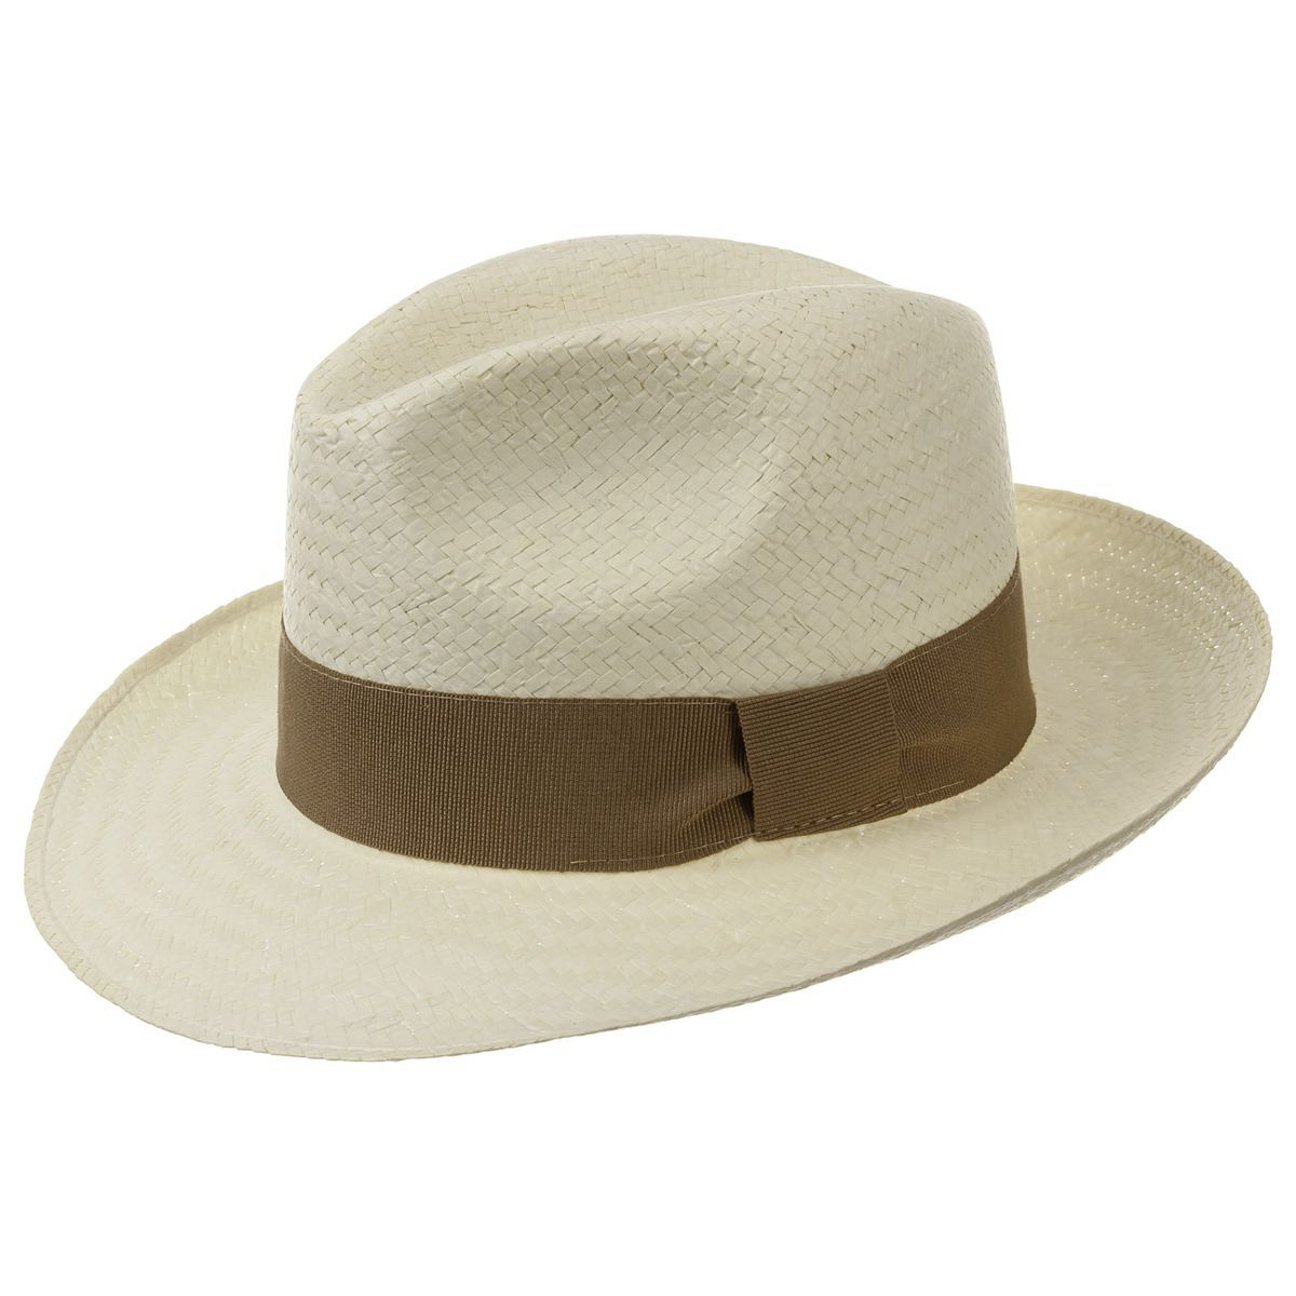 Lipodo Palermo Straw Hat (Fedora) with Grosgrain Ribbon | Spring/Summer Hat | Colour Nature | Sun Hat in Sizes S-XL Hutshopping